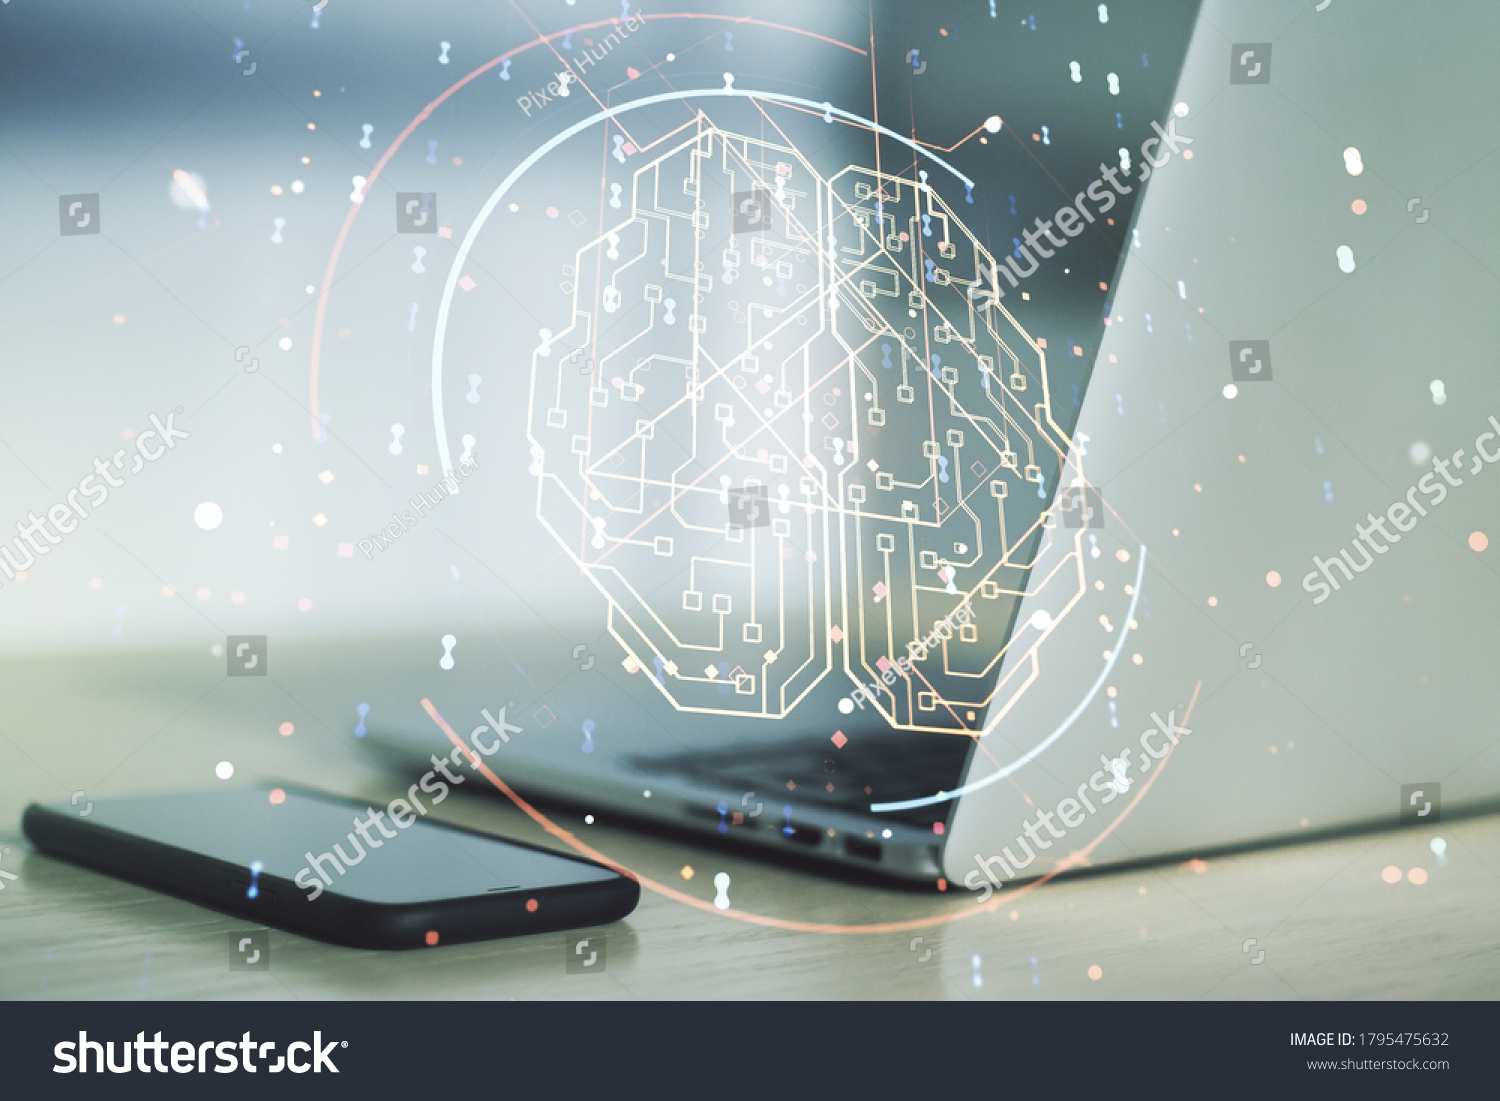 Double exposure of creative human brain microcircuit with computer on background. Future technology and AI concept #1795475632